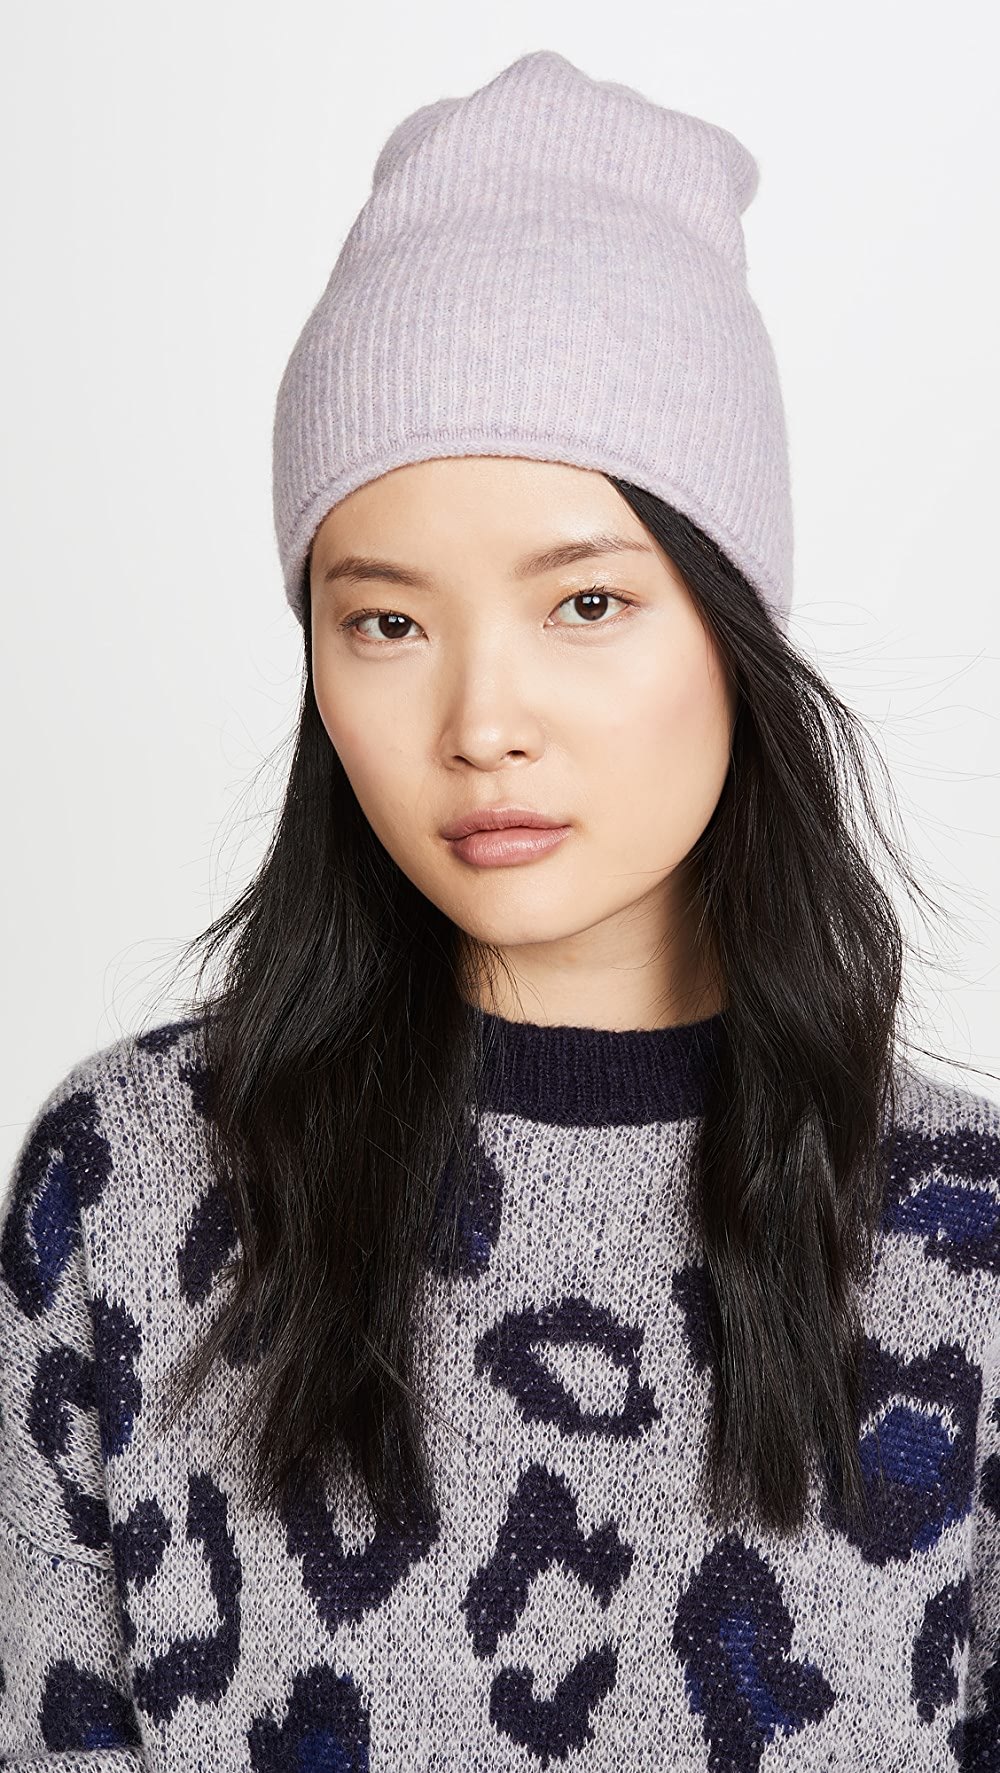 Competent Madewell - Kent Beanie Hat A Complete Range Of Specifications